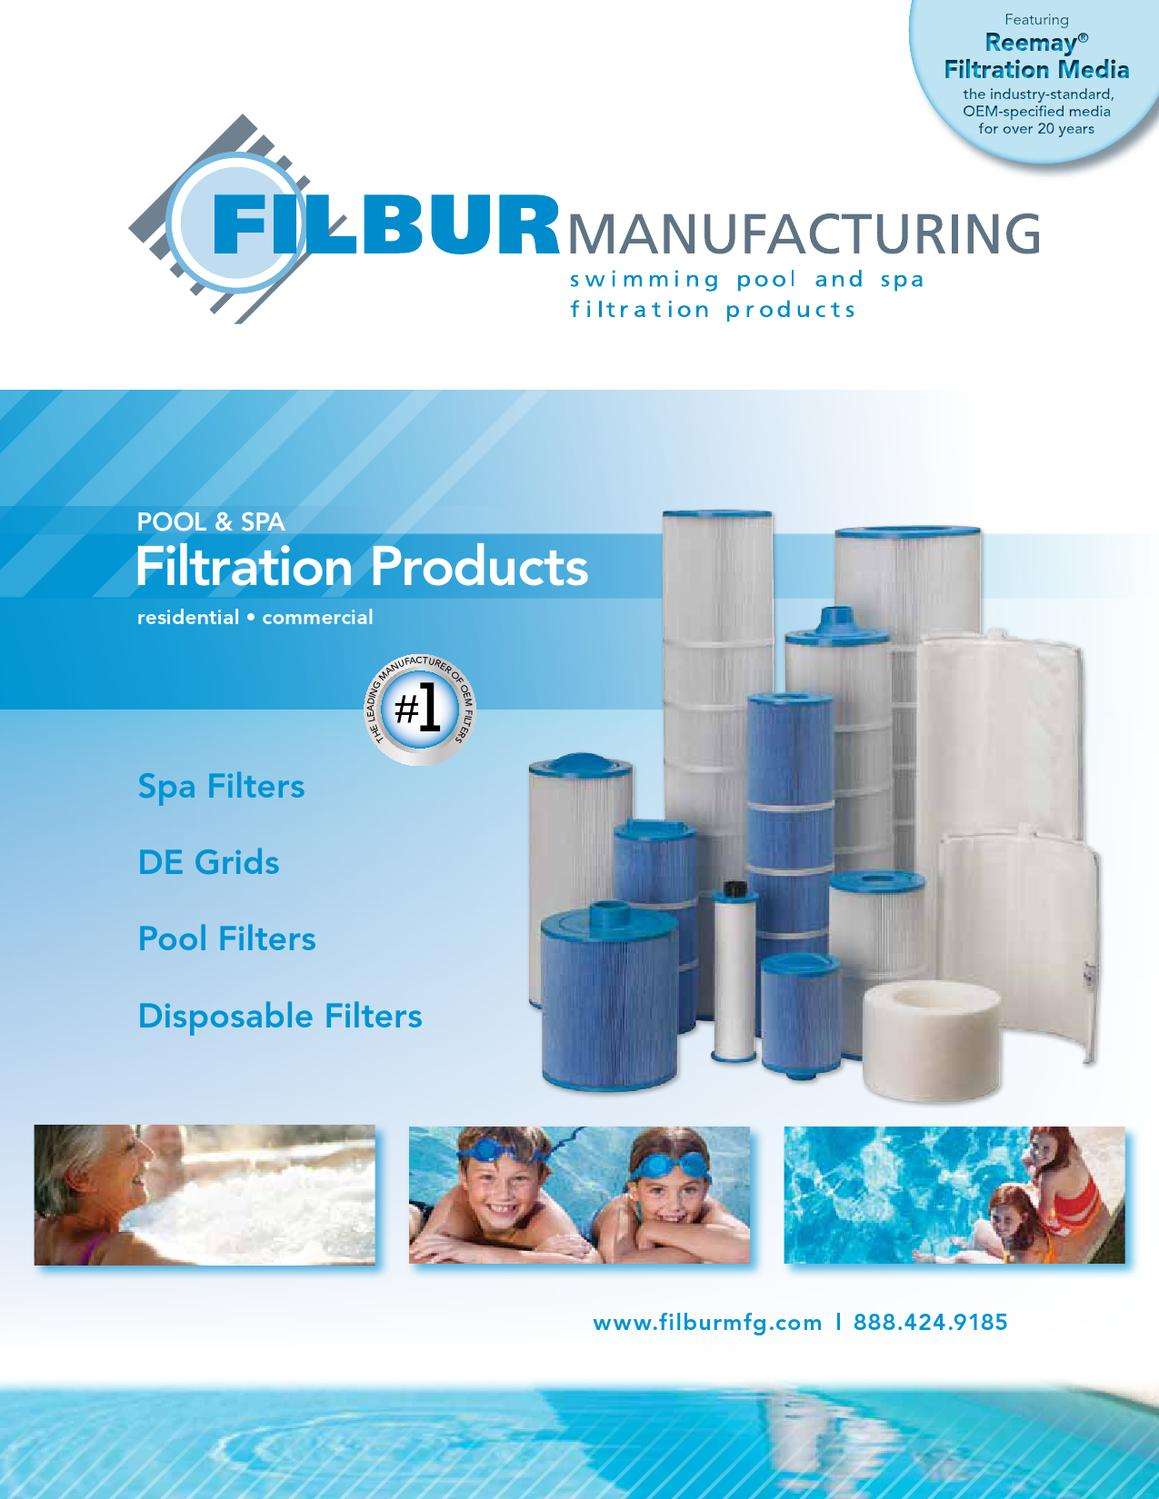 Filbur FC-0800 Antimicrobial Replacement Filter Cartridge for Jandy CL 340 Pool and Spa Filter Filbur Distribution